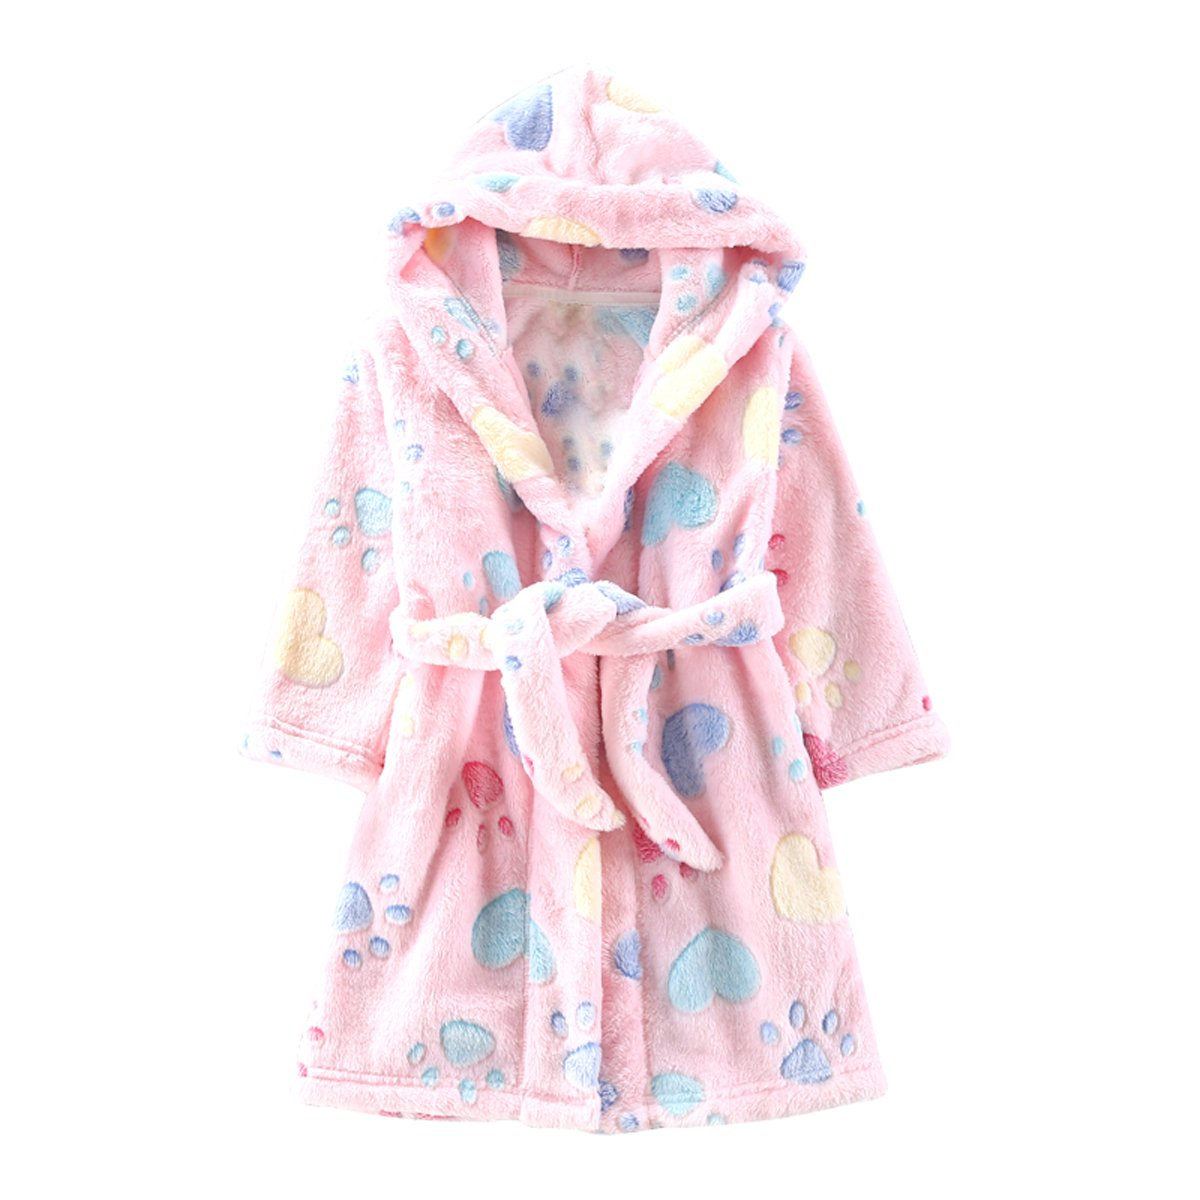 Toddlers/kids/baby Soft Fleece Bath Robe Children Pajamas Sleepwear With Hood (2T, Pink)